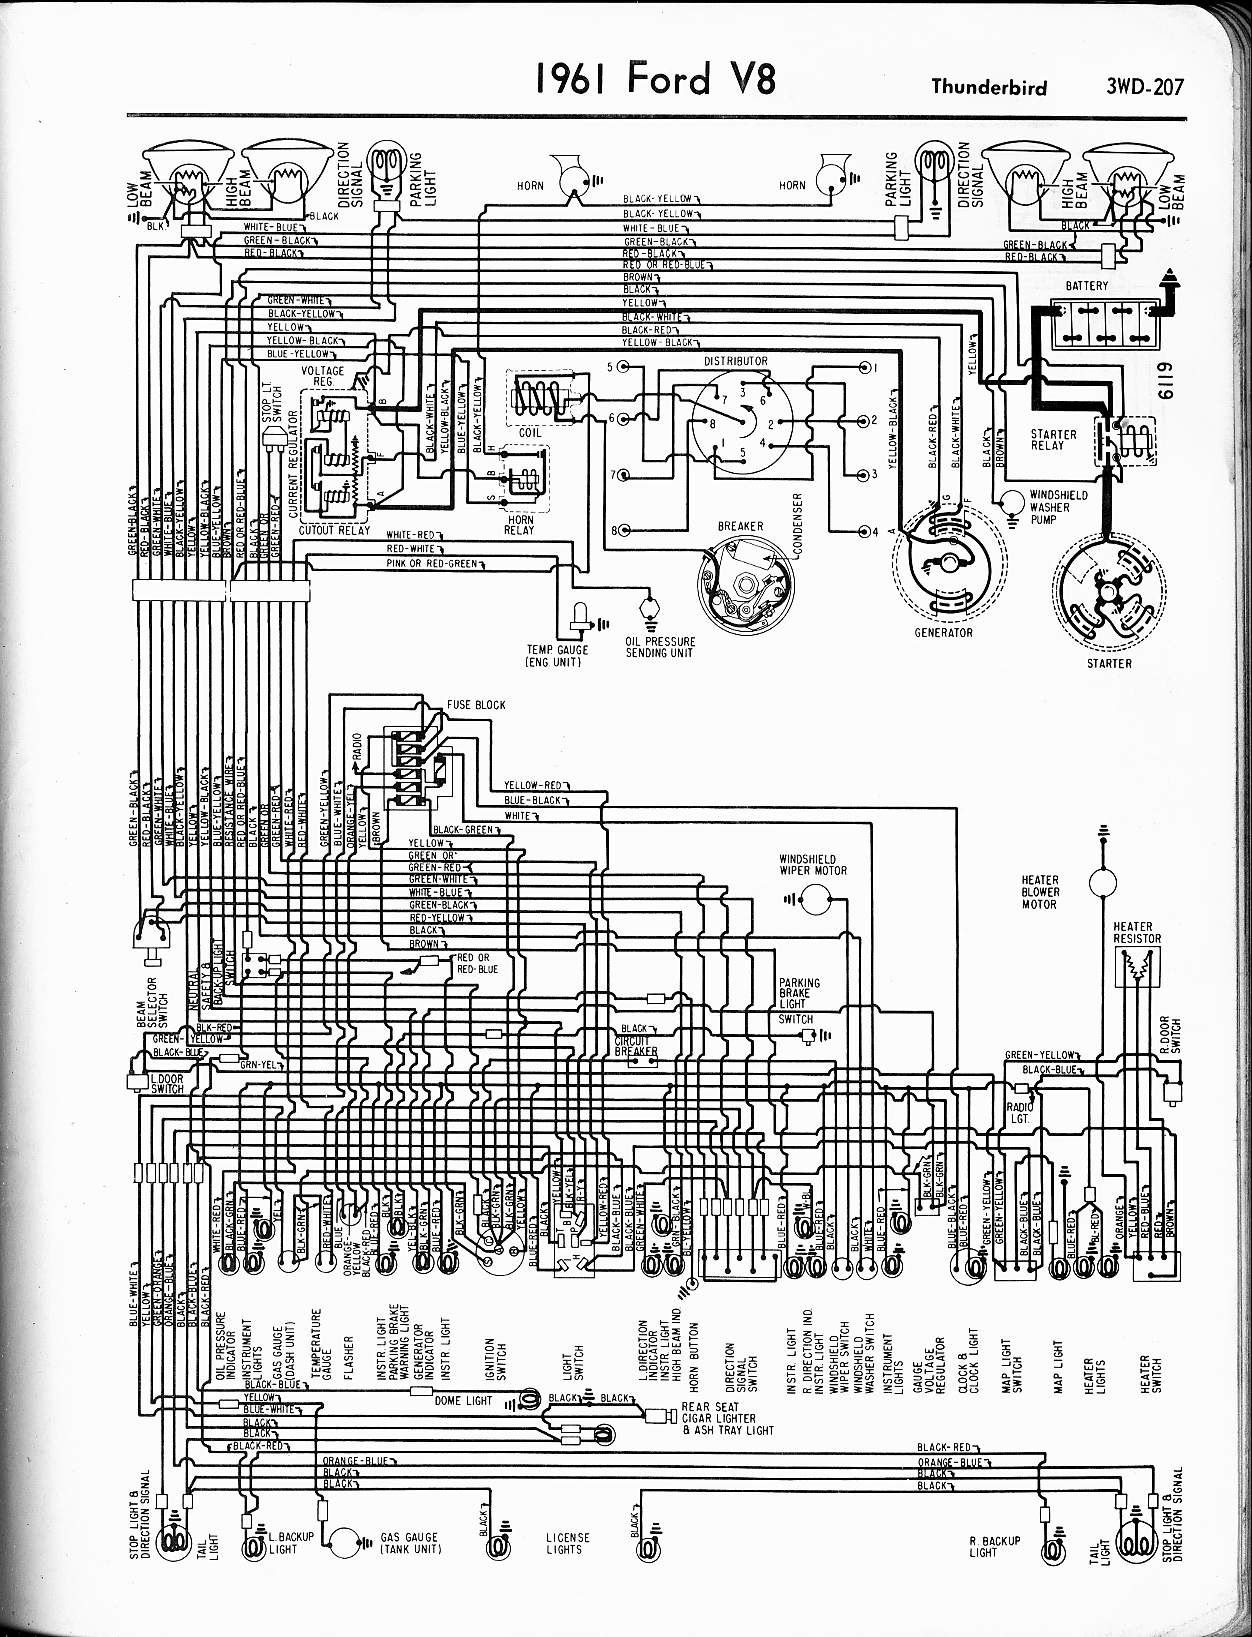 1955 T Bird Wiring Diagram Data Electrical For 1960 Chevrolet Corvair All Models 1965 Ford